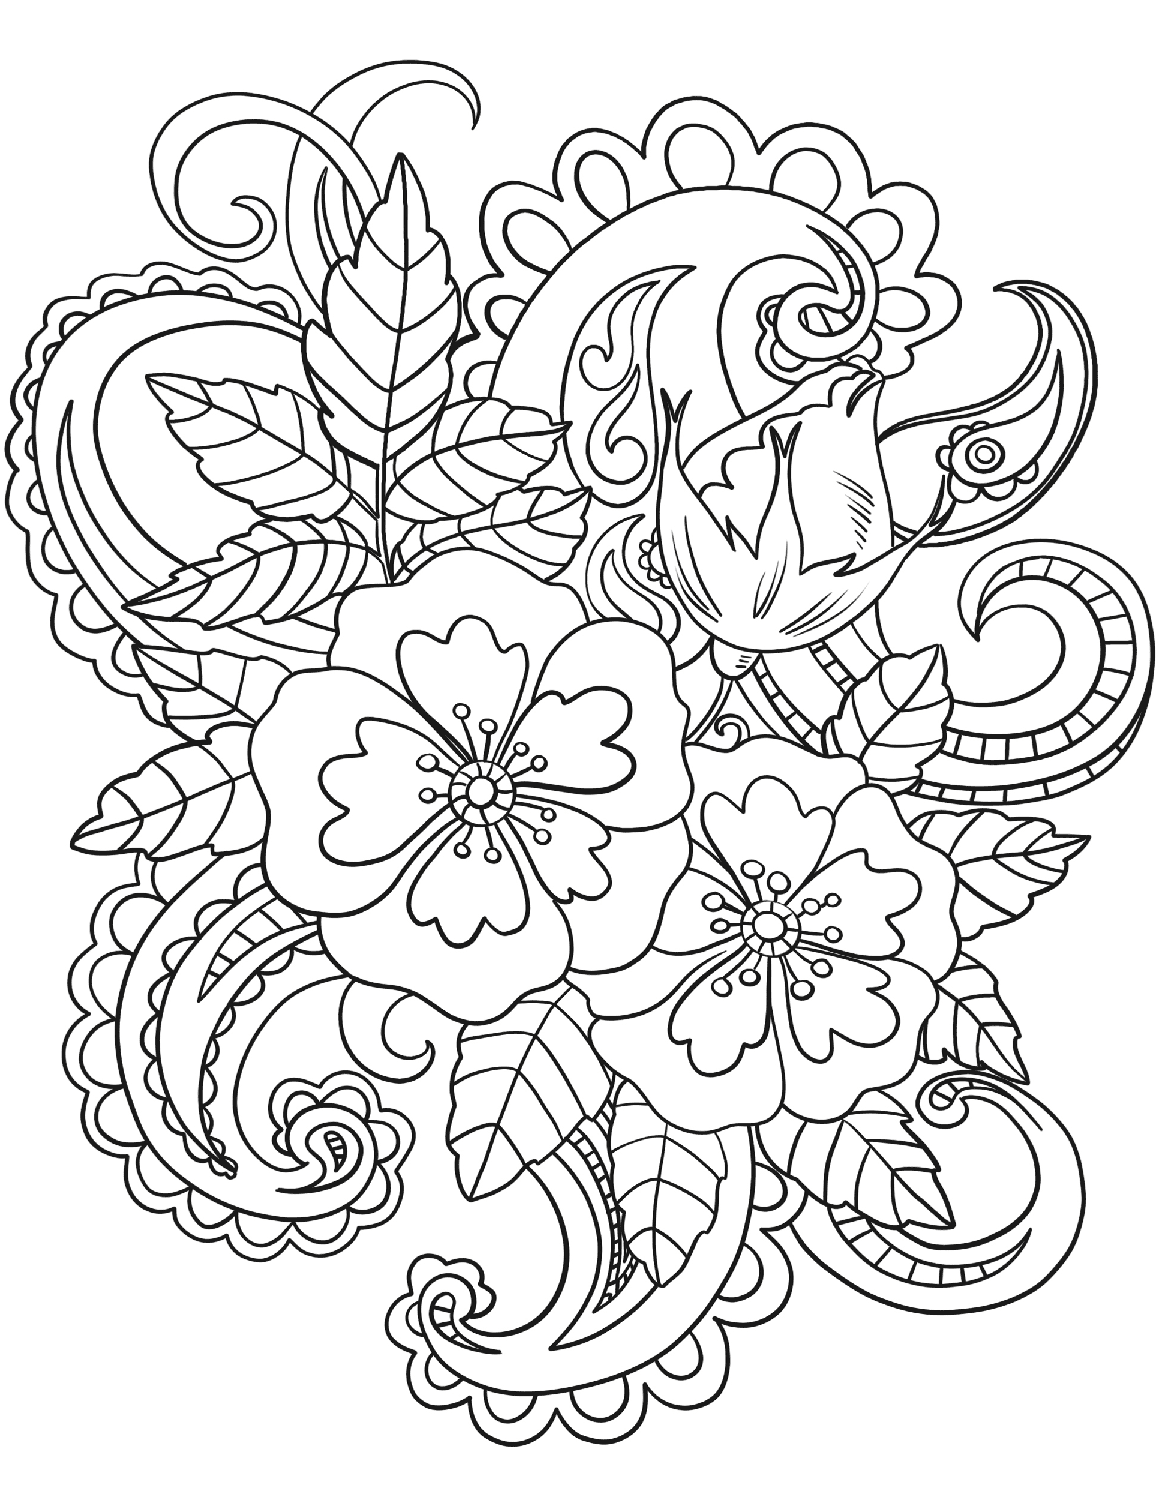 flower pattern coloring pages flower pattern coloring page free printable coloring pages pattern coloring pages flower